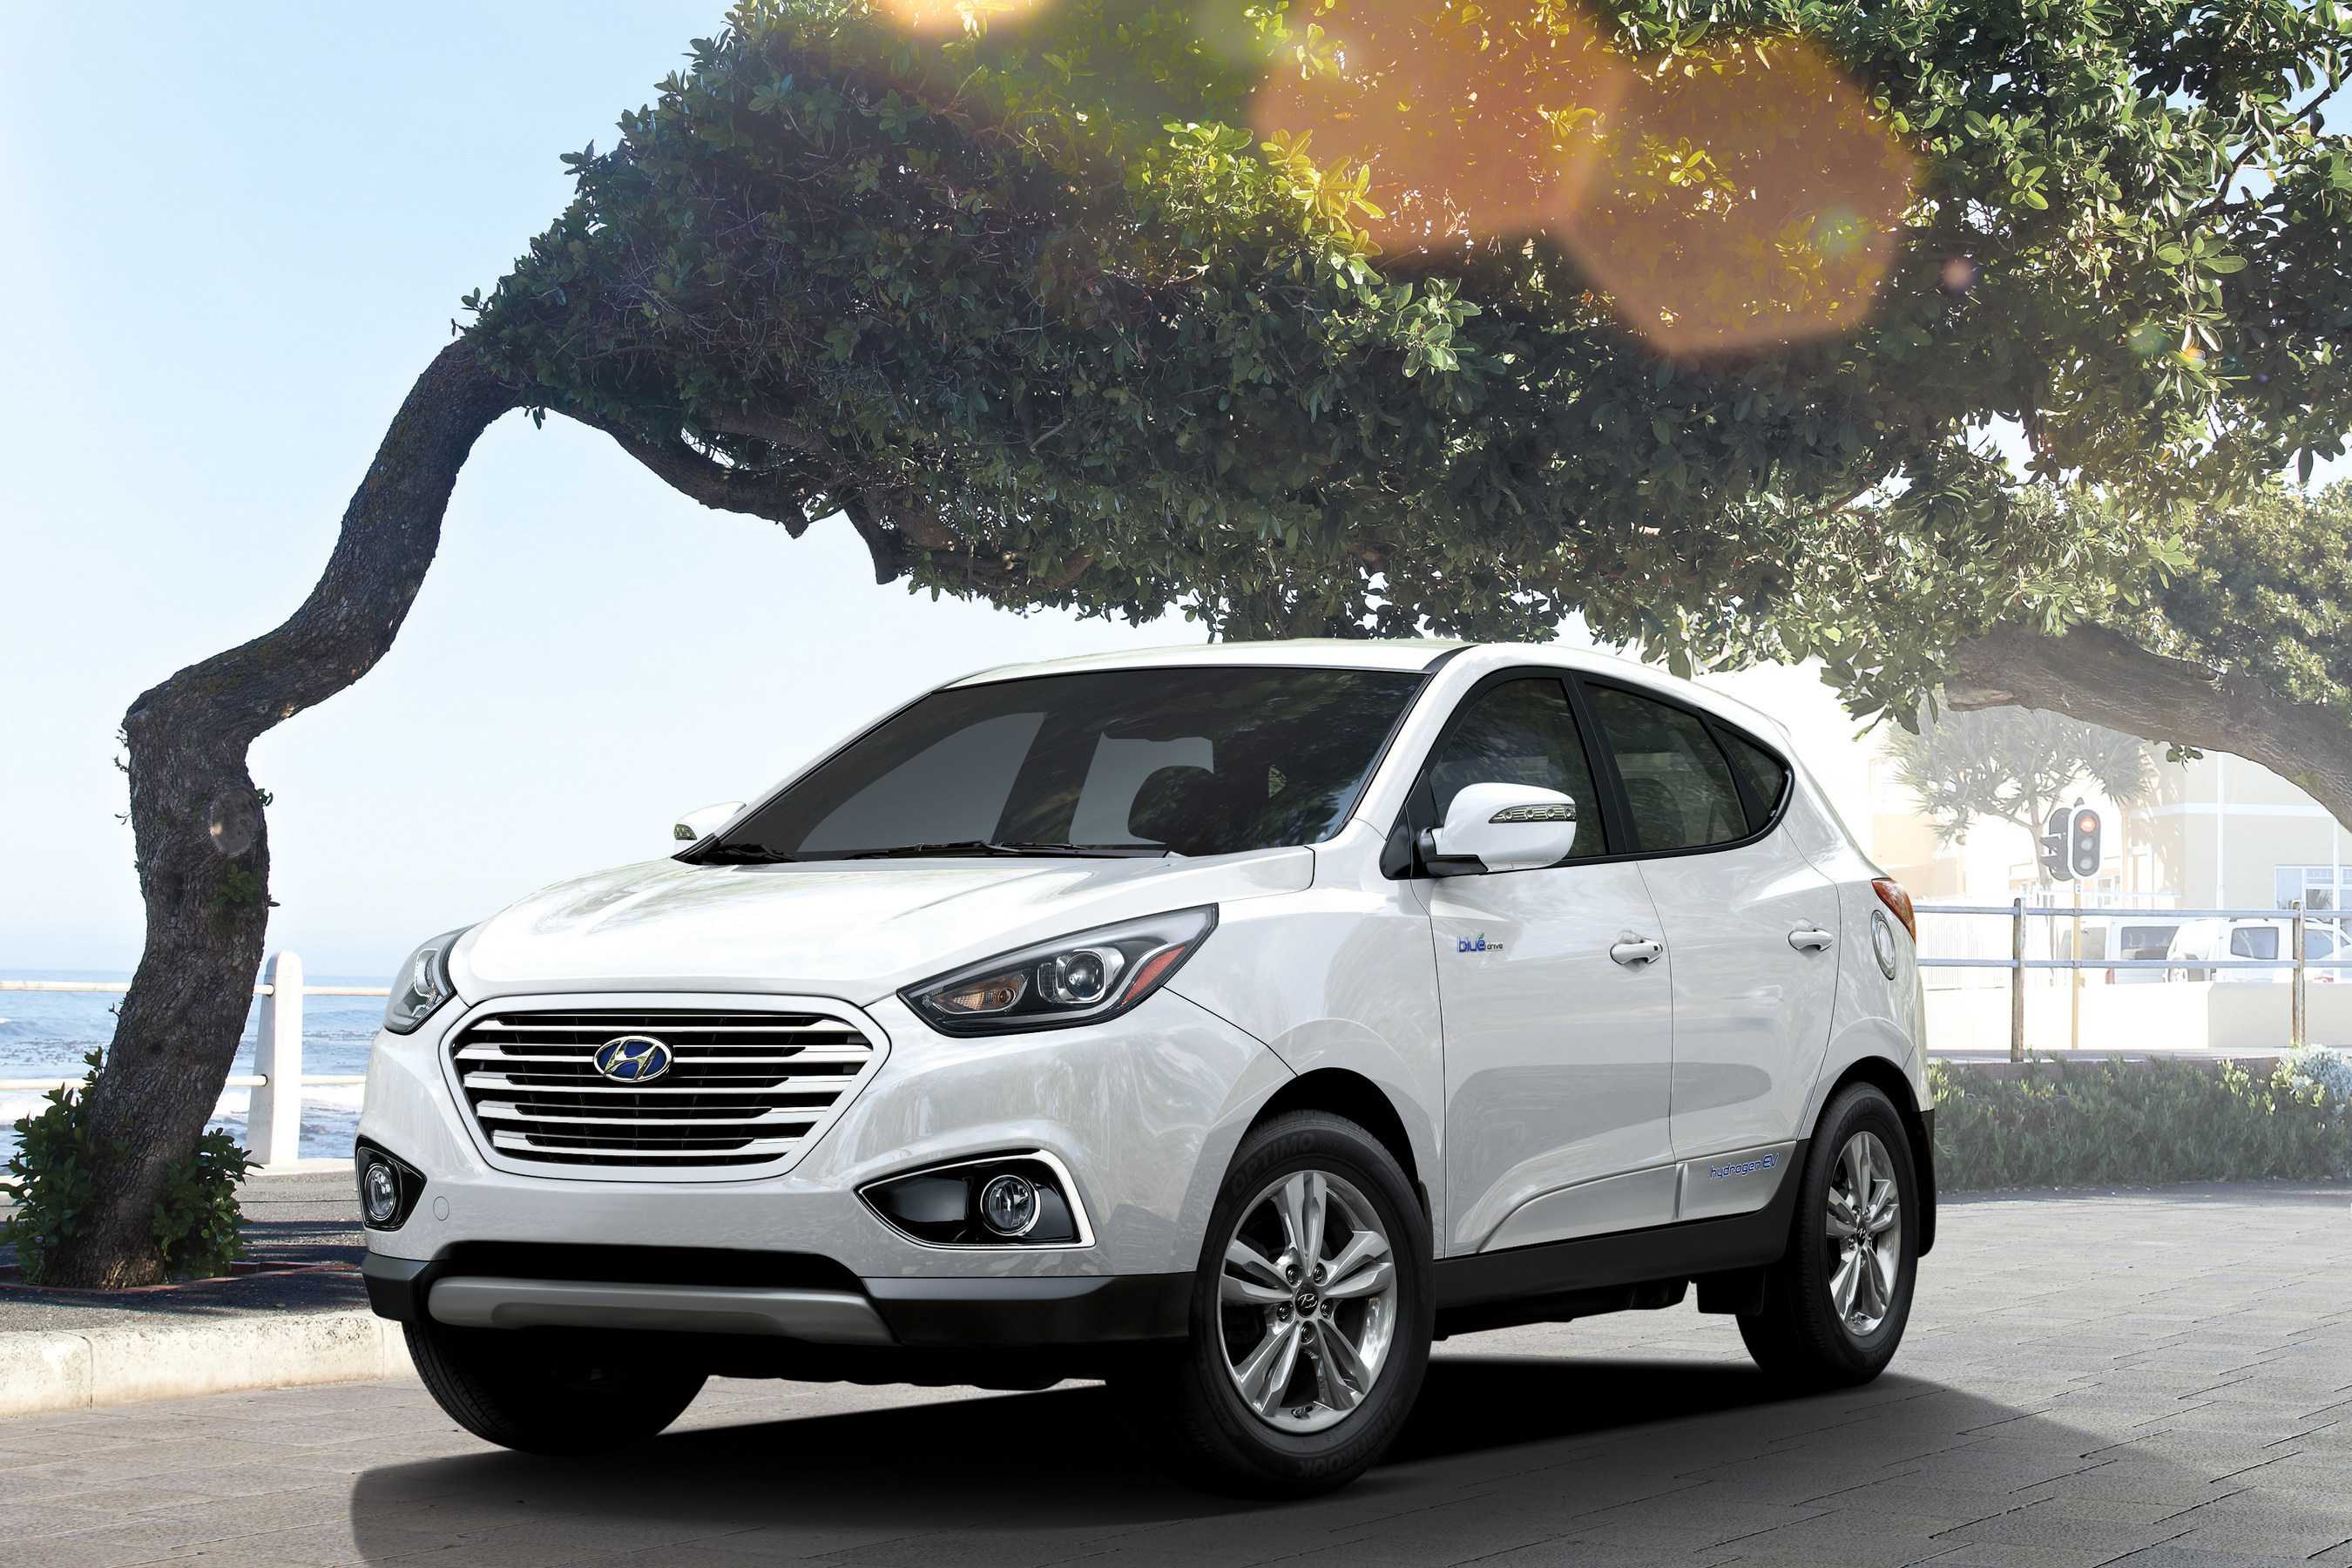 Hyundai Collaborates With Congressional Hydrogen and Fuel Cell Caucus to Highlight Introduction of Mass-Produced Fuel Cell Vehicles in the Retail Market